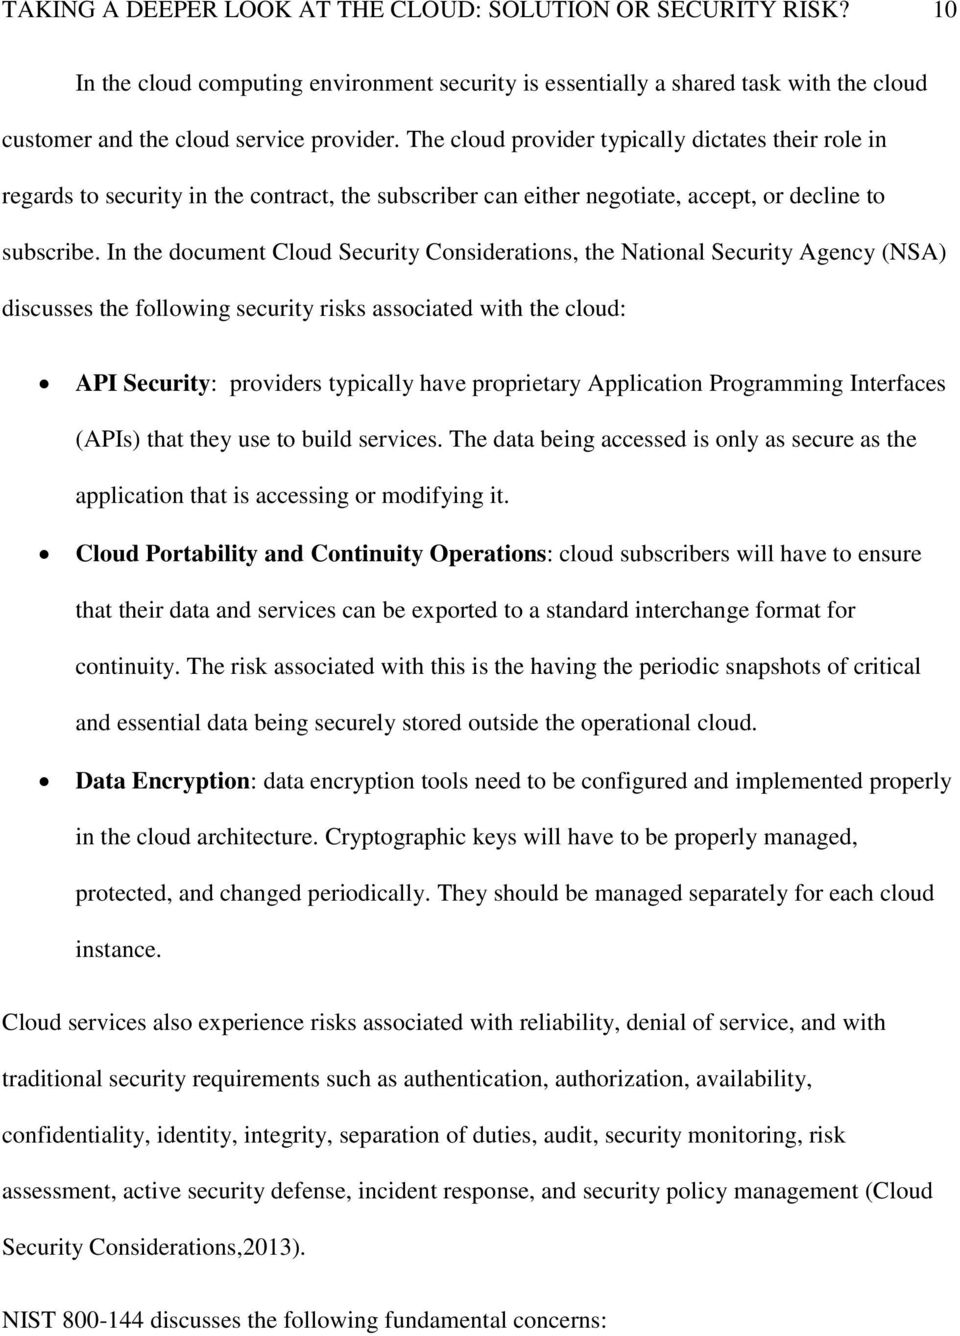 In the document Cloud Security Considerations, the National Security Agency (NSA) discusses the following security risks associated with the cloud: API Security: providers typically have proprietary